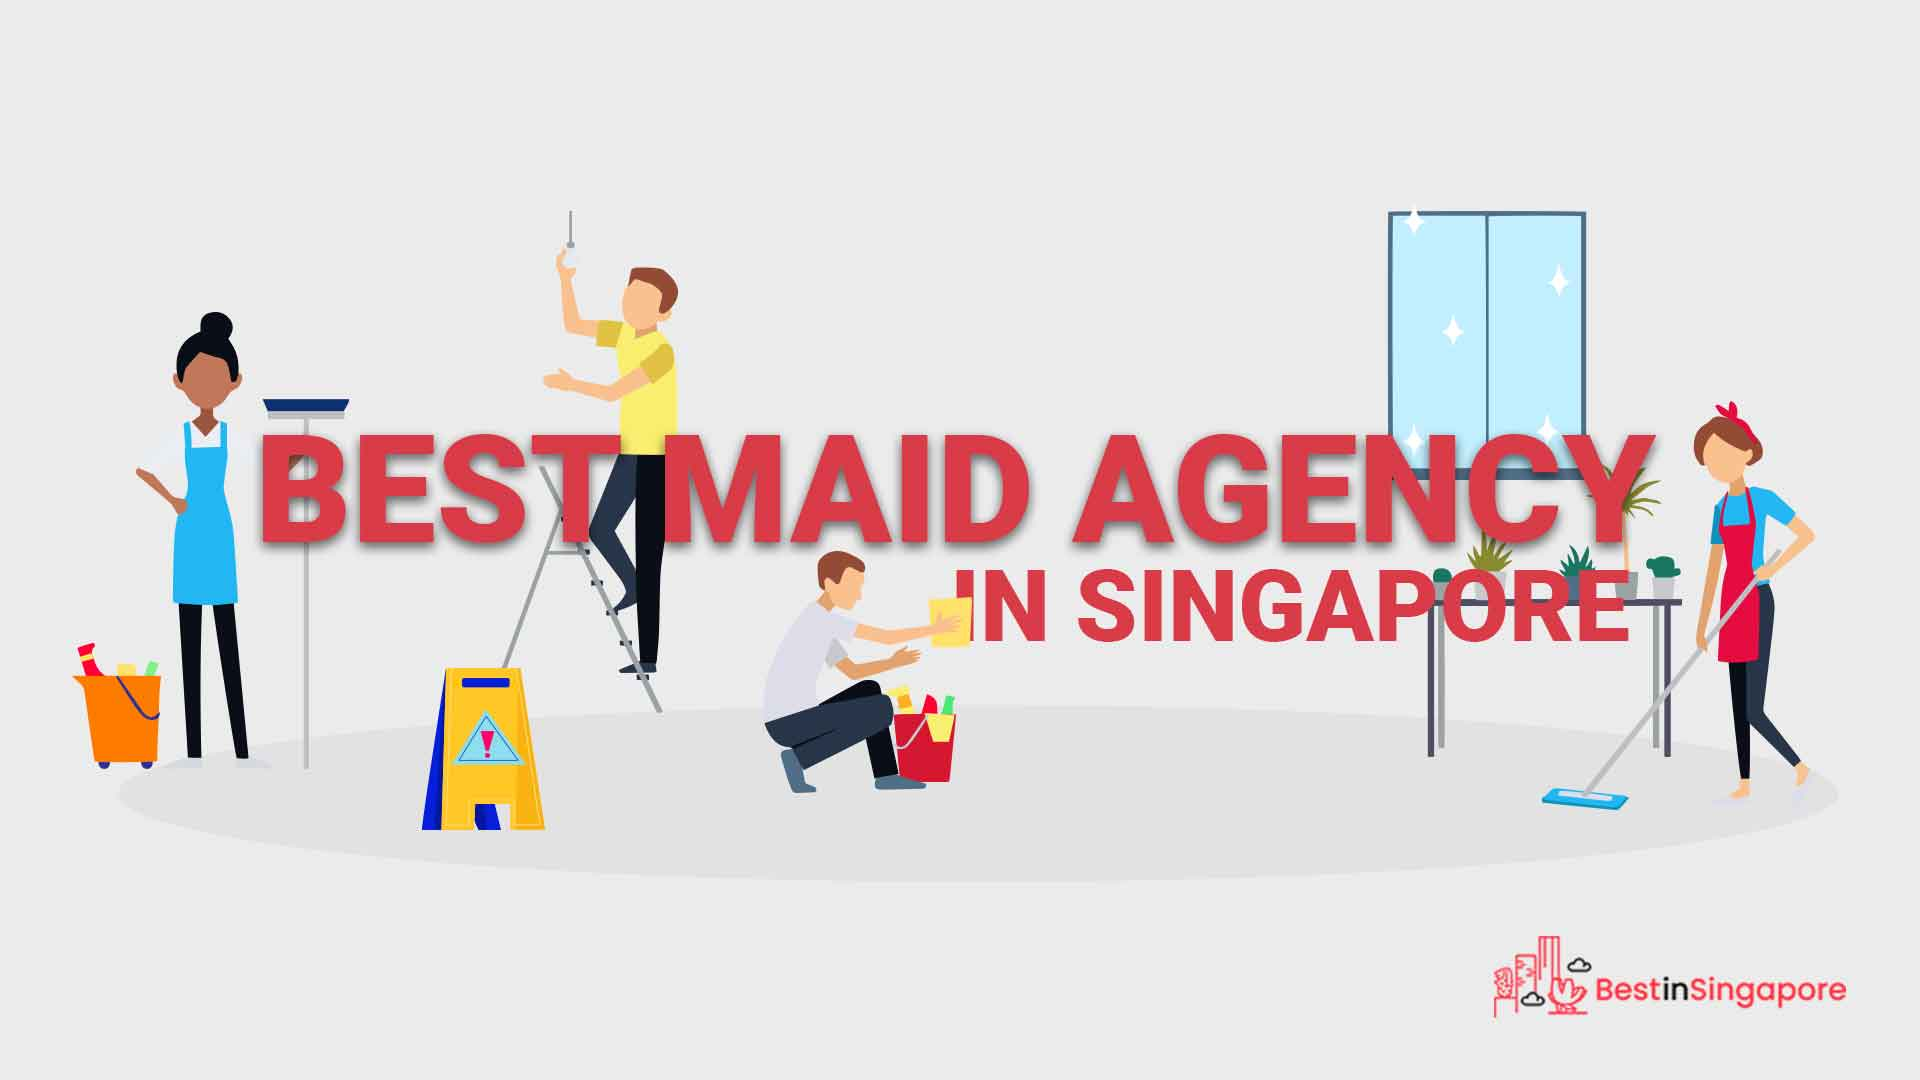 Best Maid Agency in Singapore